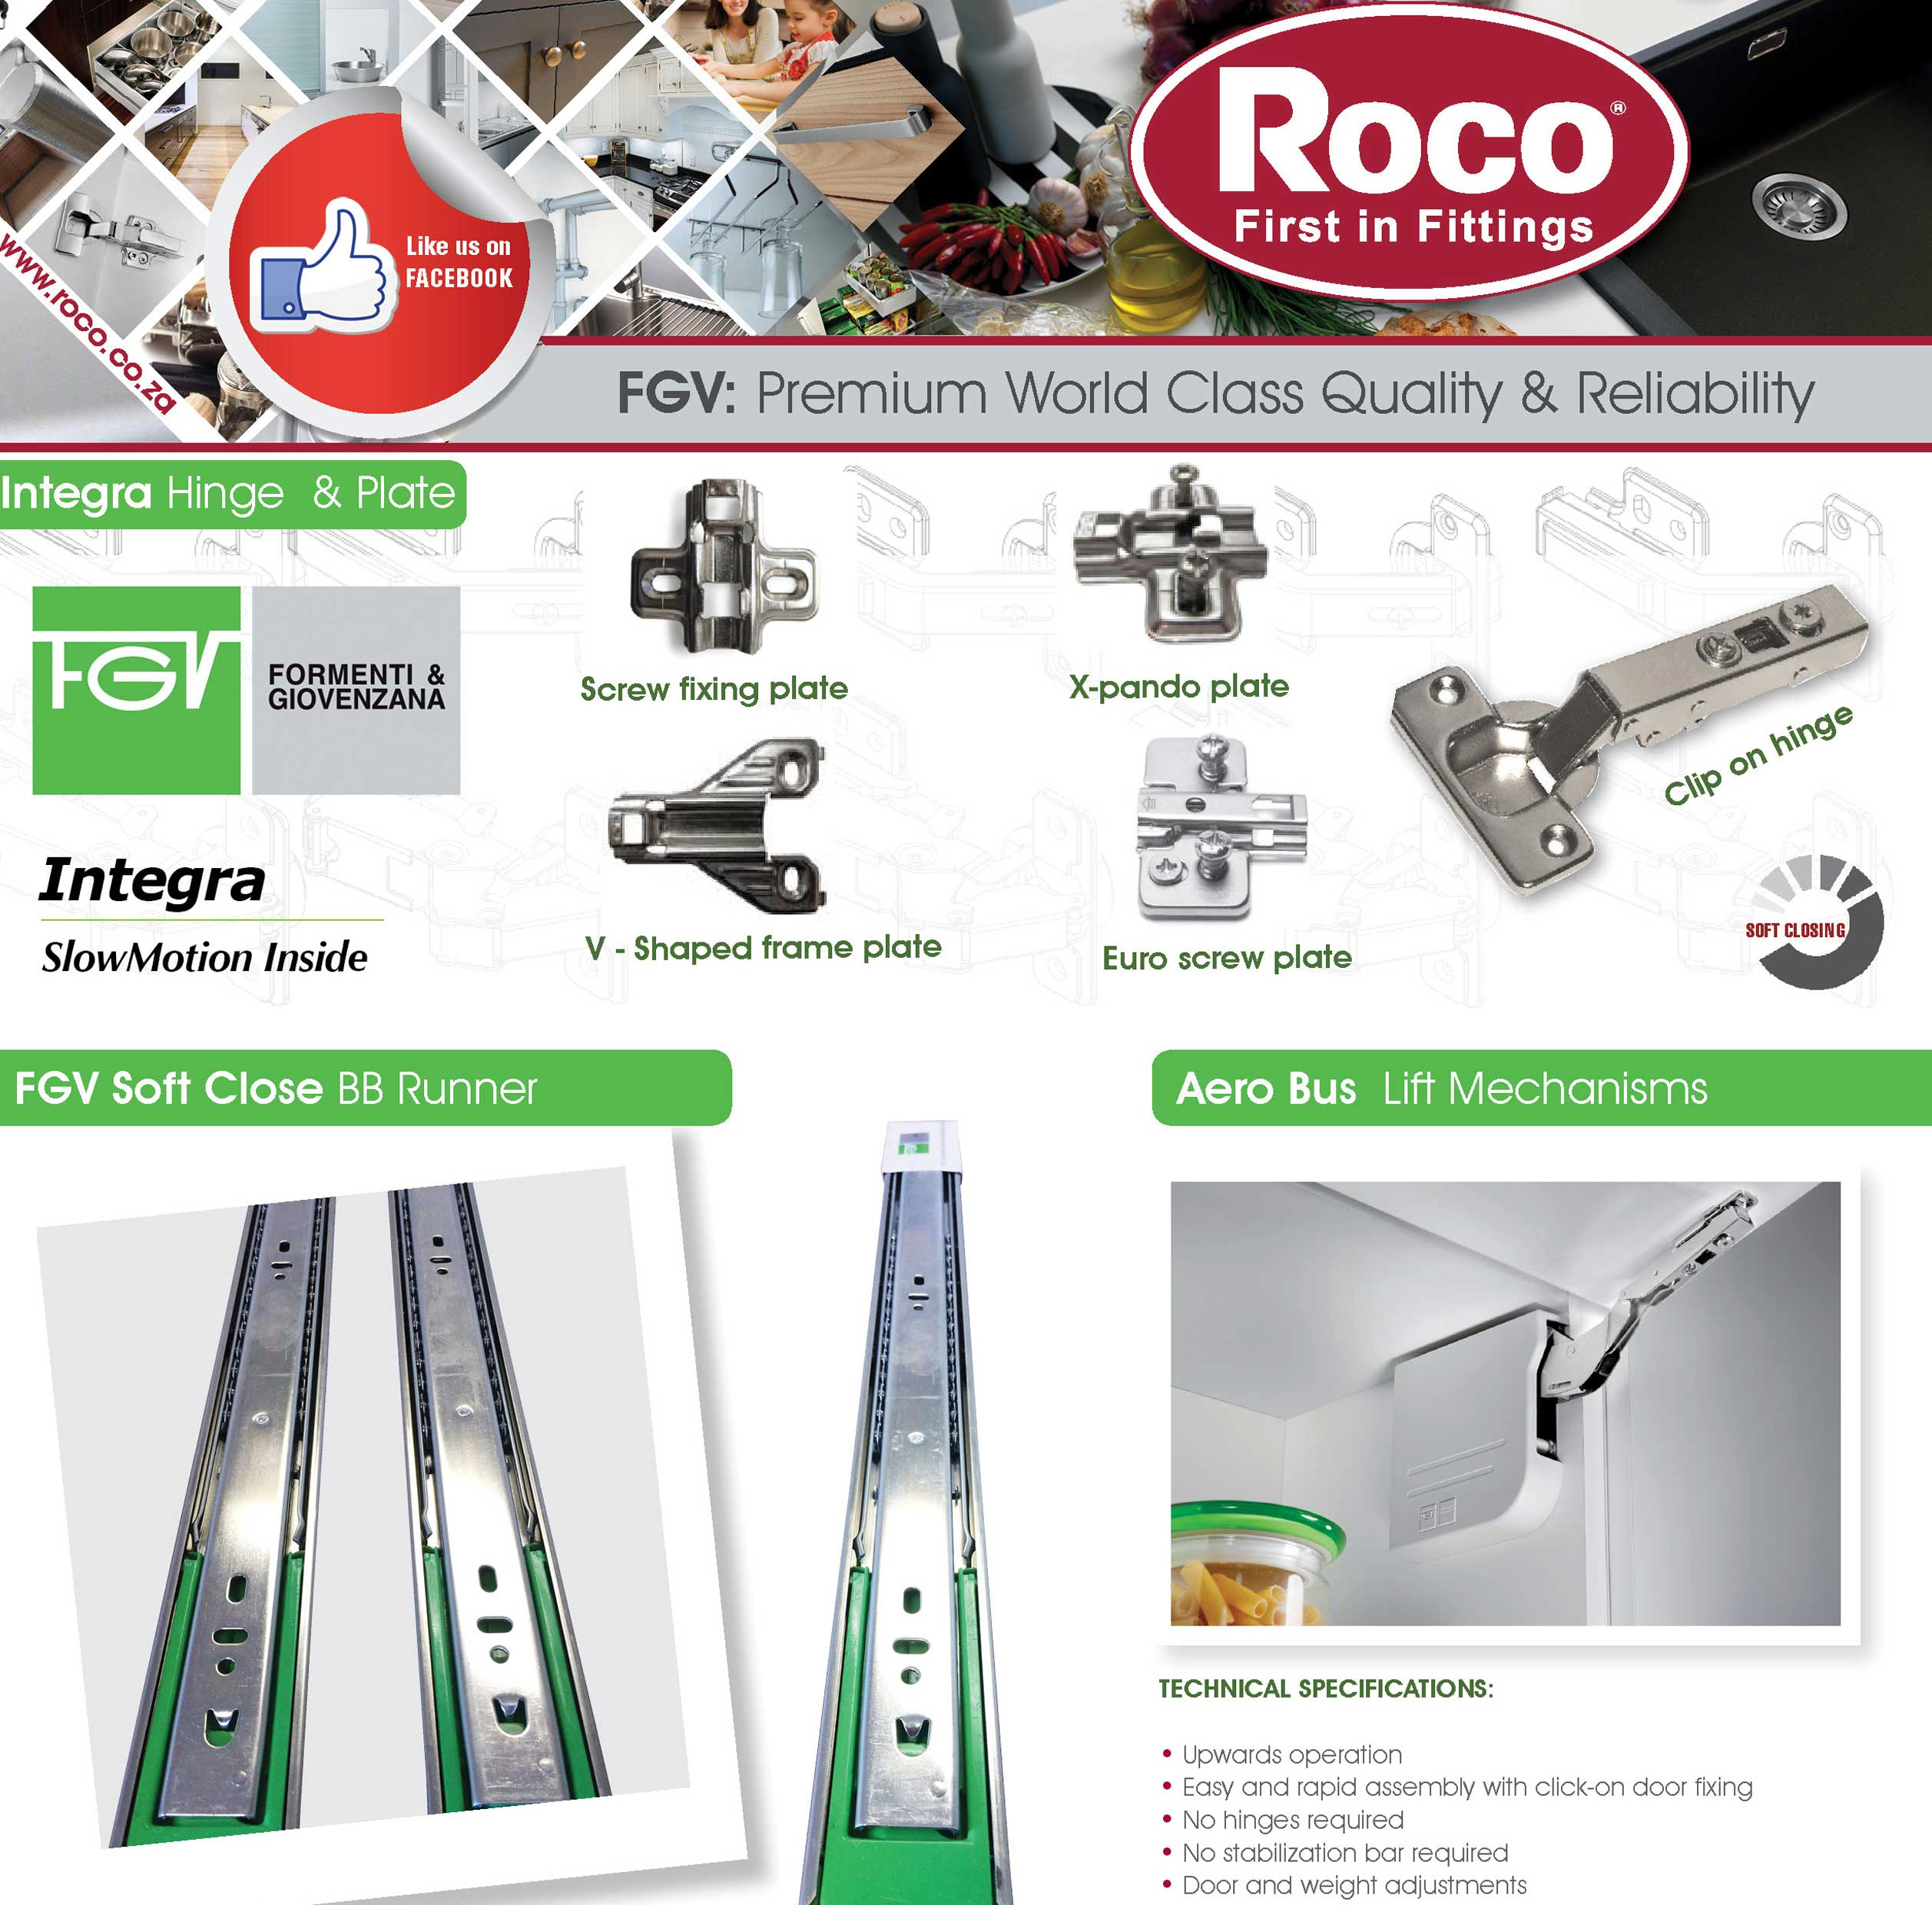 Roco   Fittings for Kitchen and Furniture Industries   Sinks